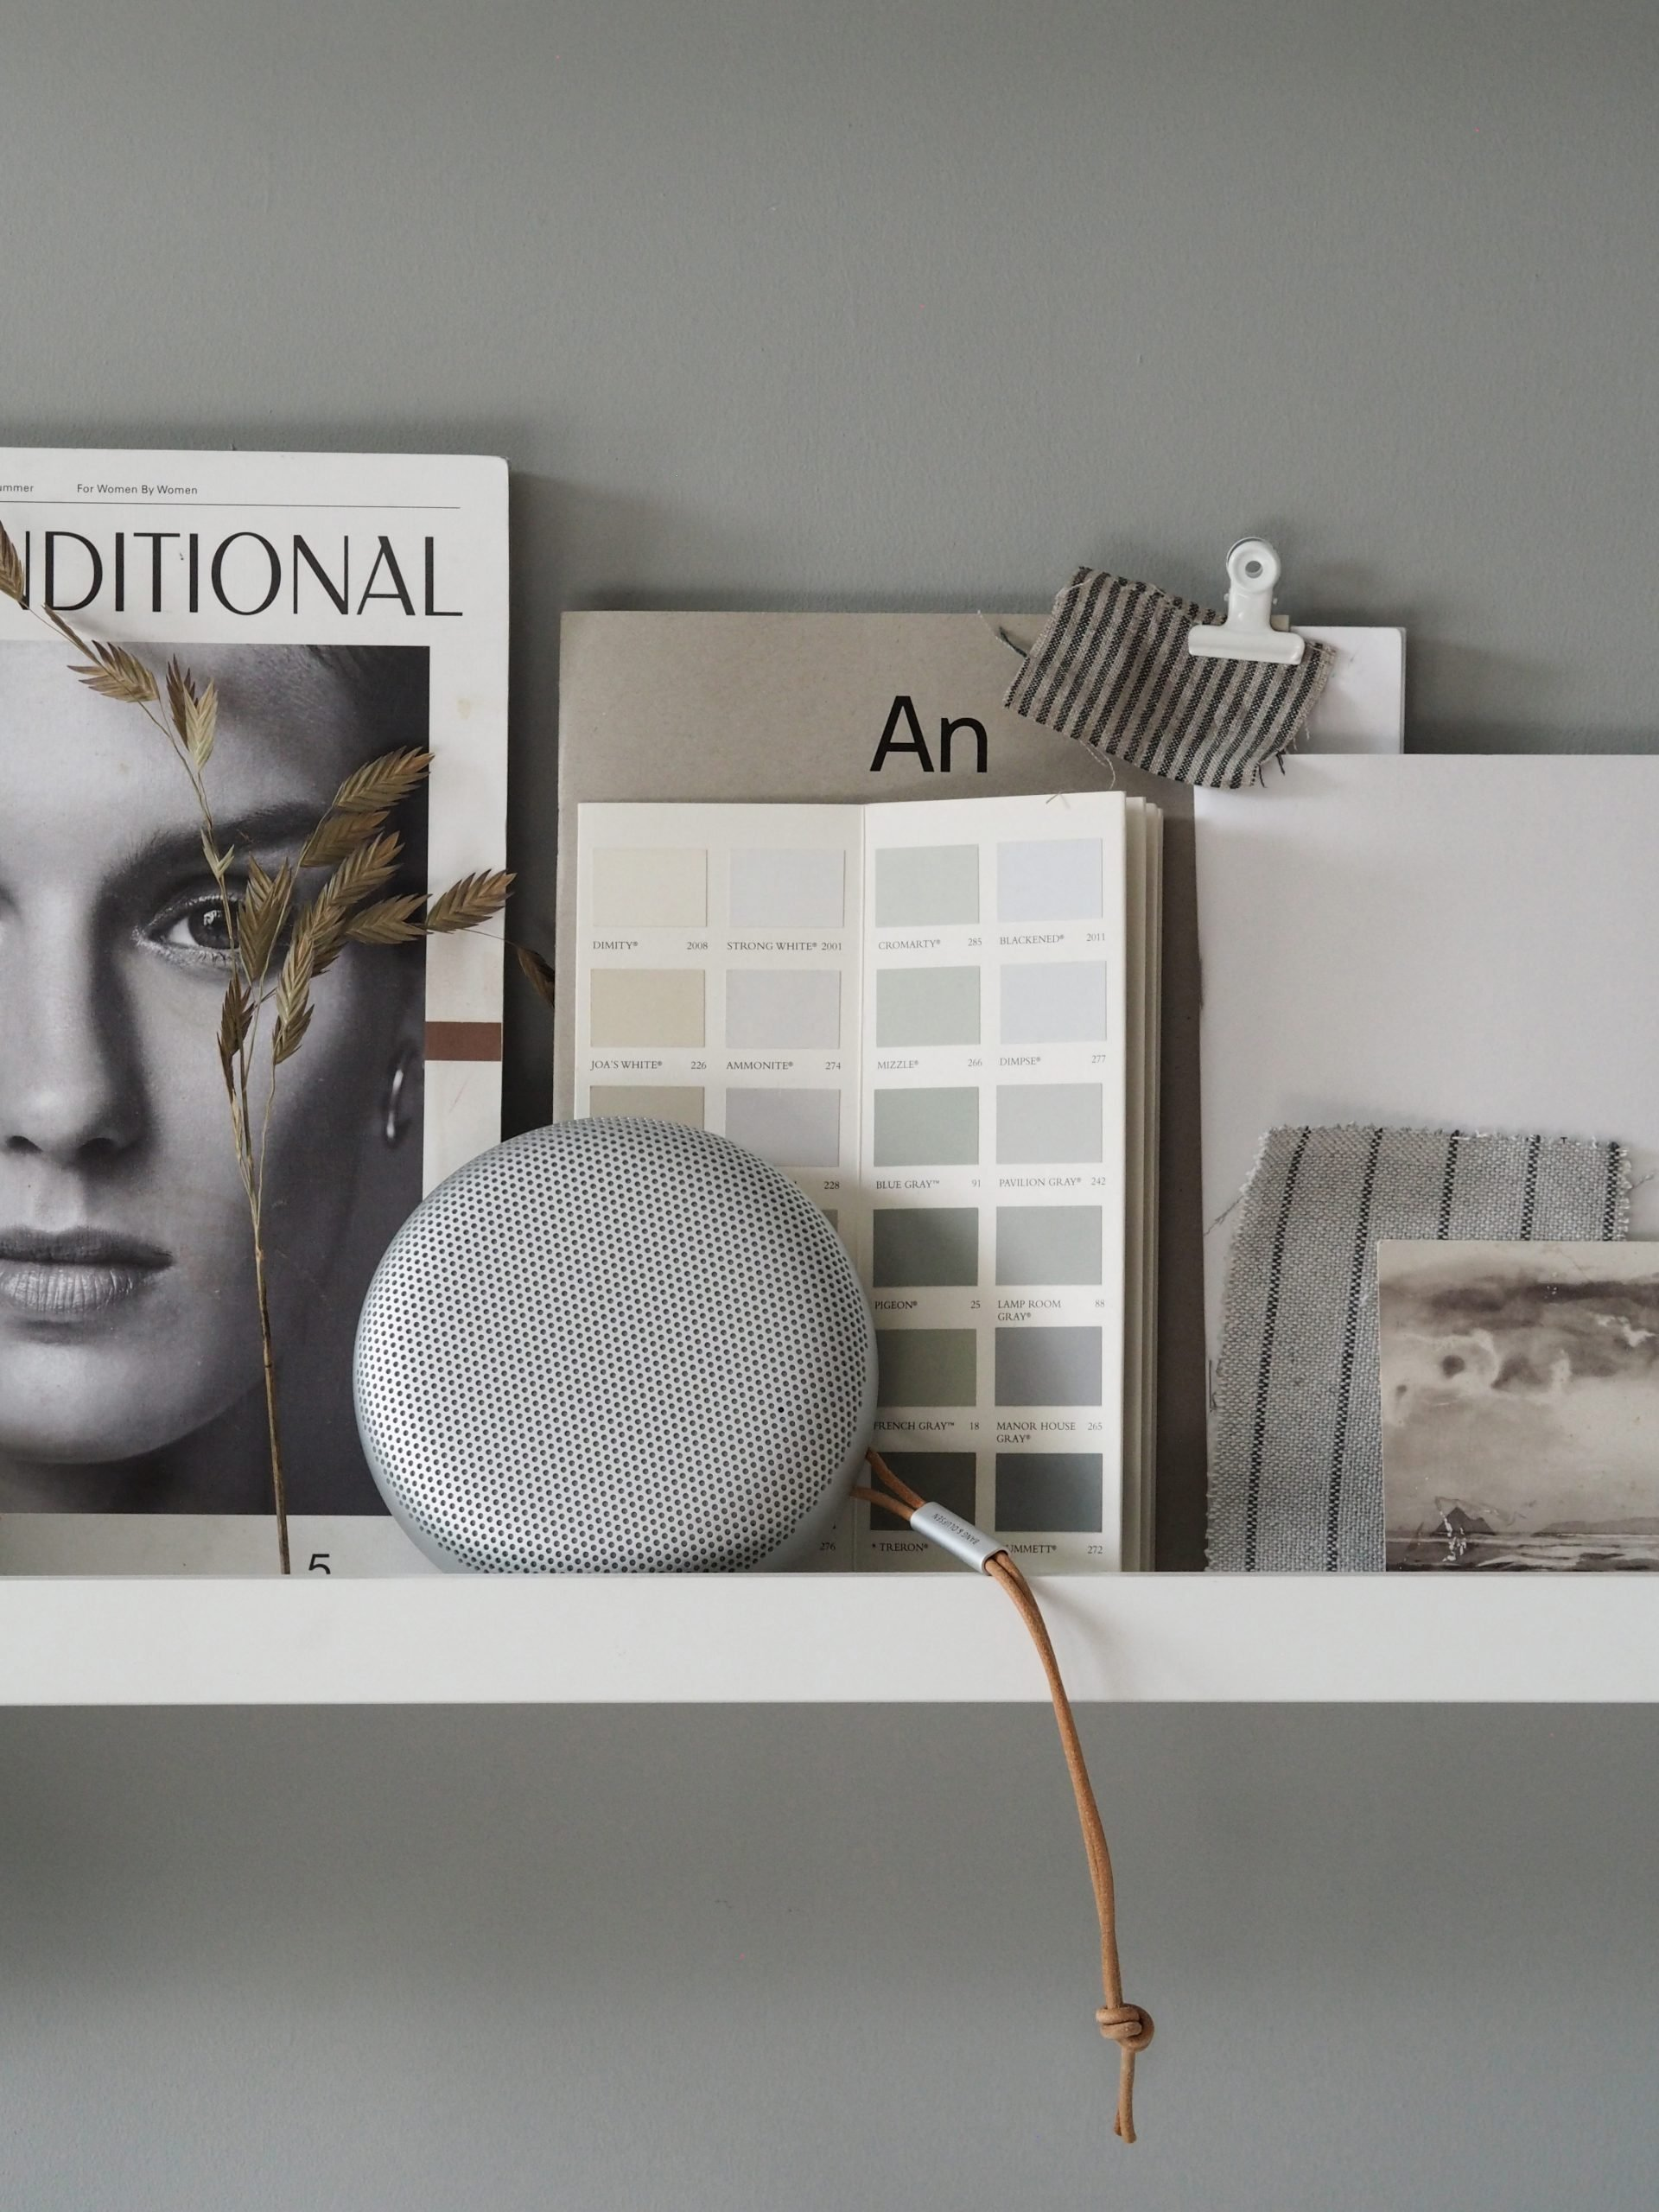 catesthill bang olufsen work station 4 scaled